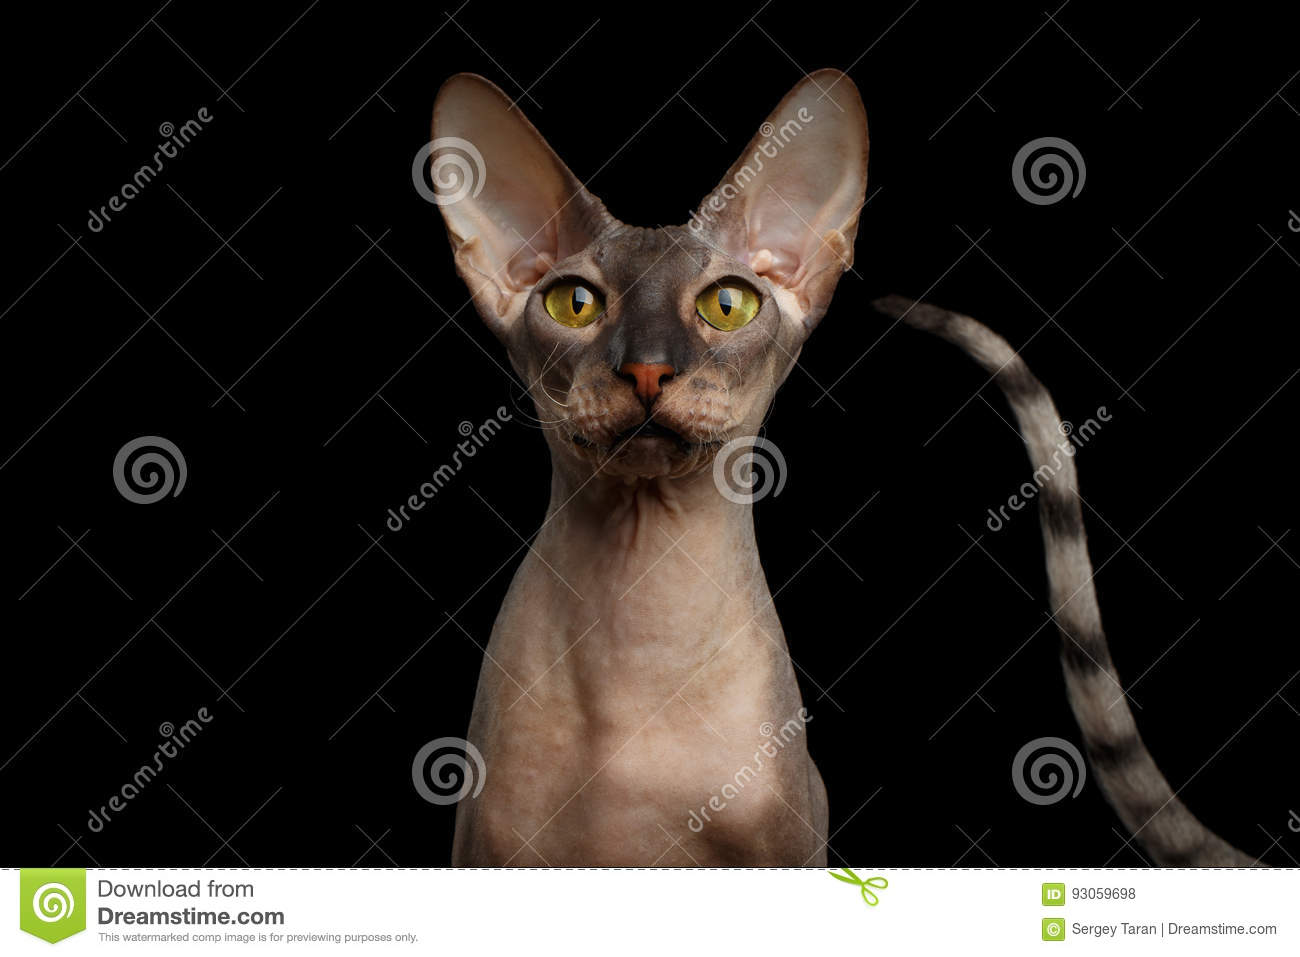 Petersburg Sphynx: photo, character, description of the breed and reviews